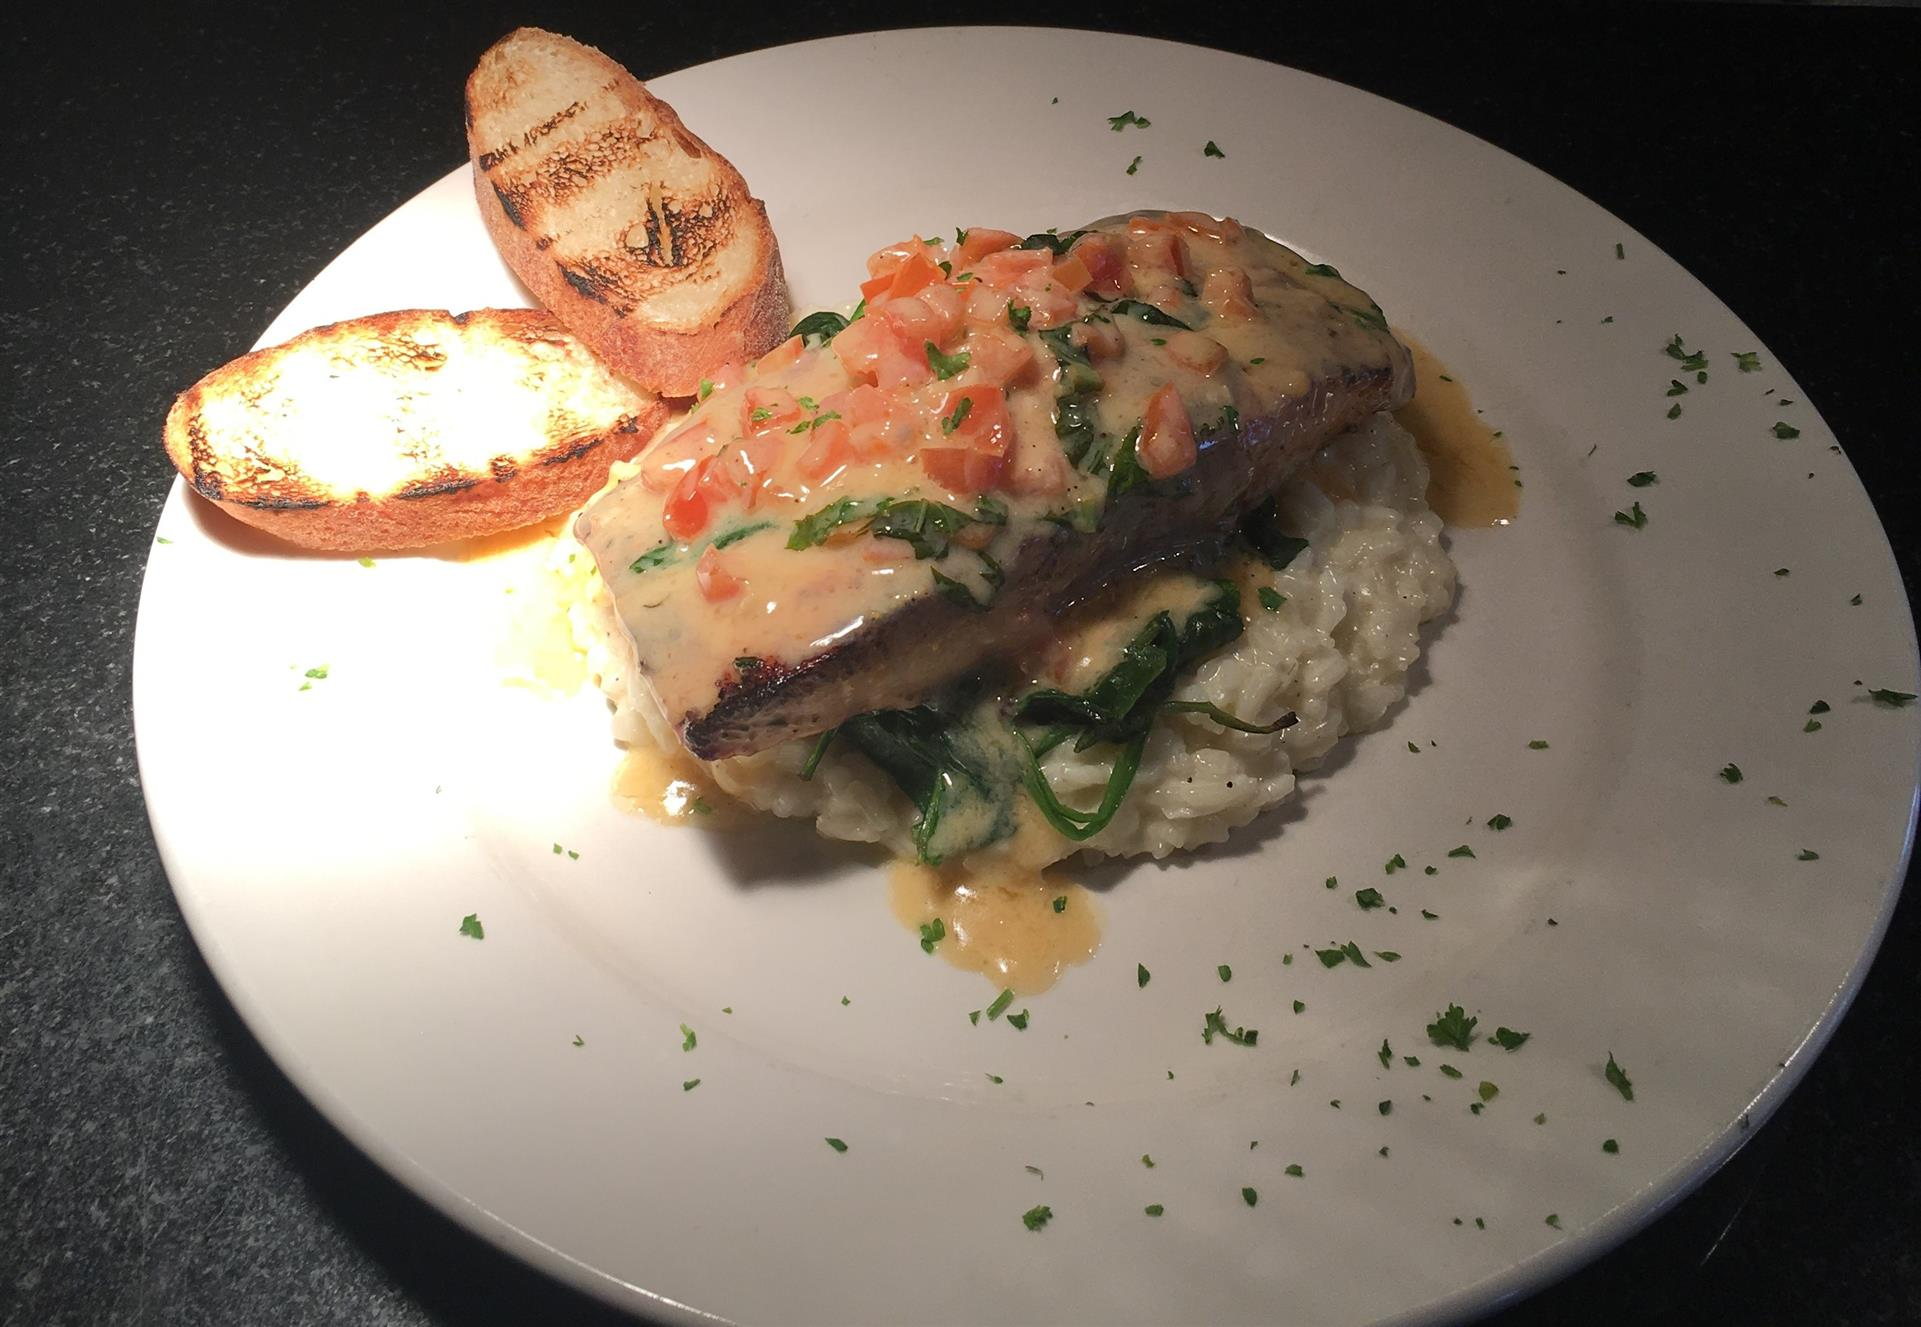 Oven Roasted Salmon over Garlic Mashed Potatoes and Brussel Sprouts. topped Orange Dijon Glaze